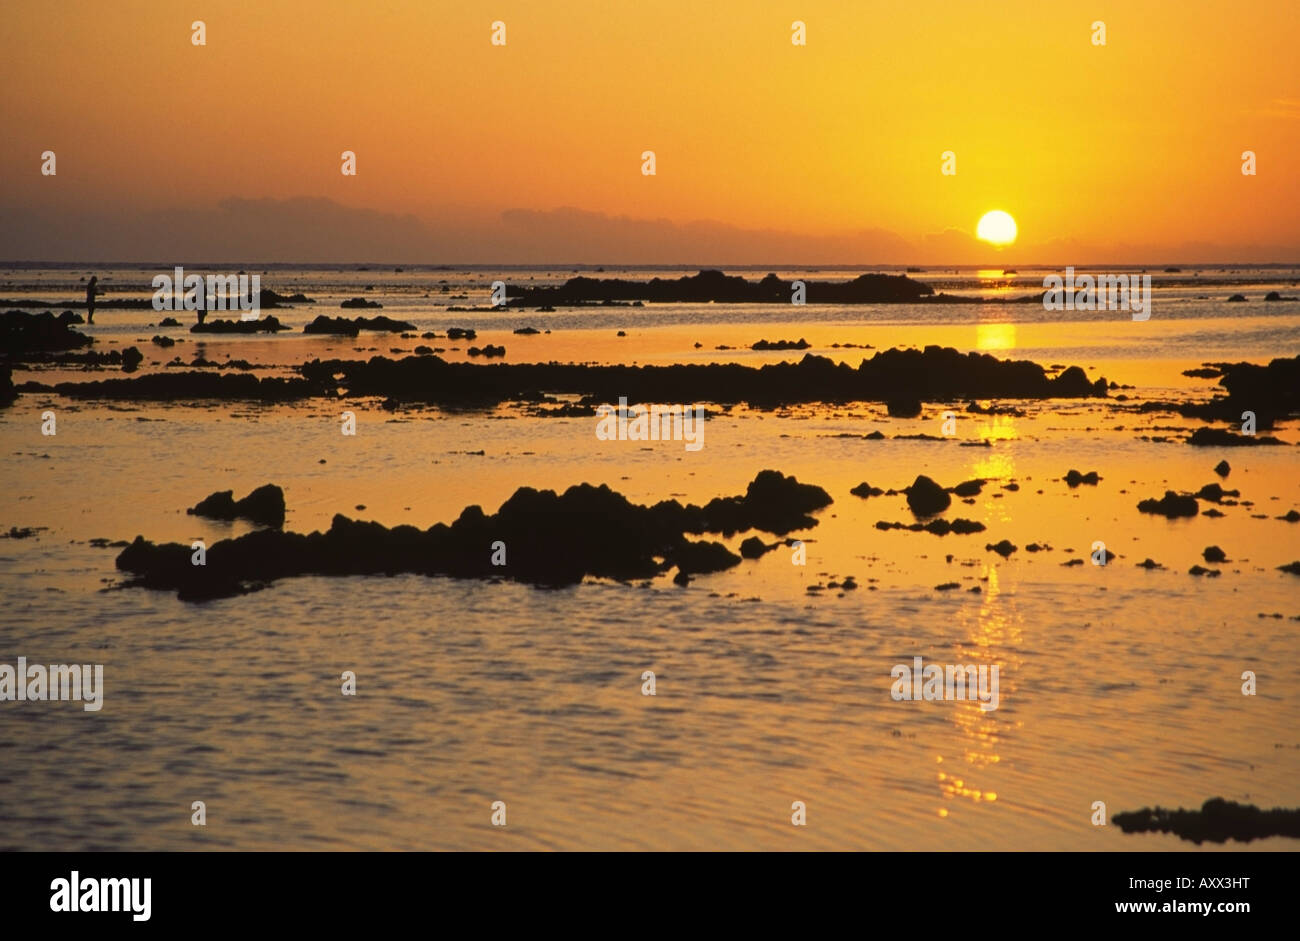 South Pacific Fiji Islands Viti Levu Coral Coast - Stock Image